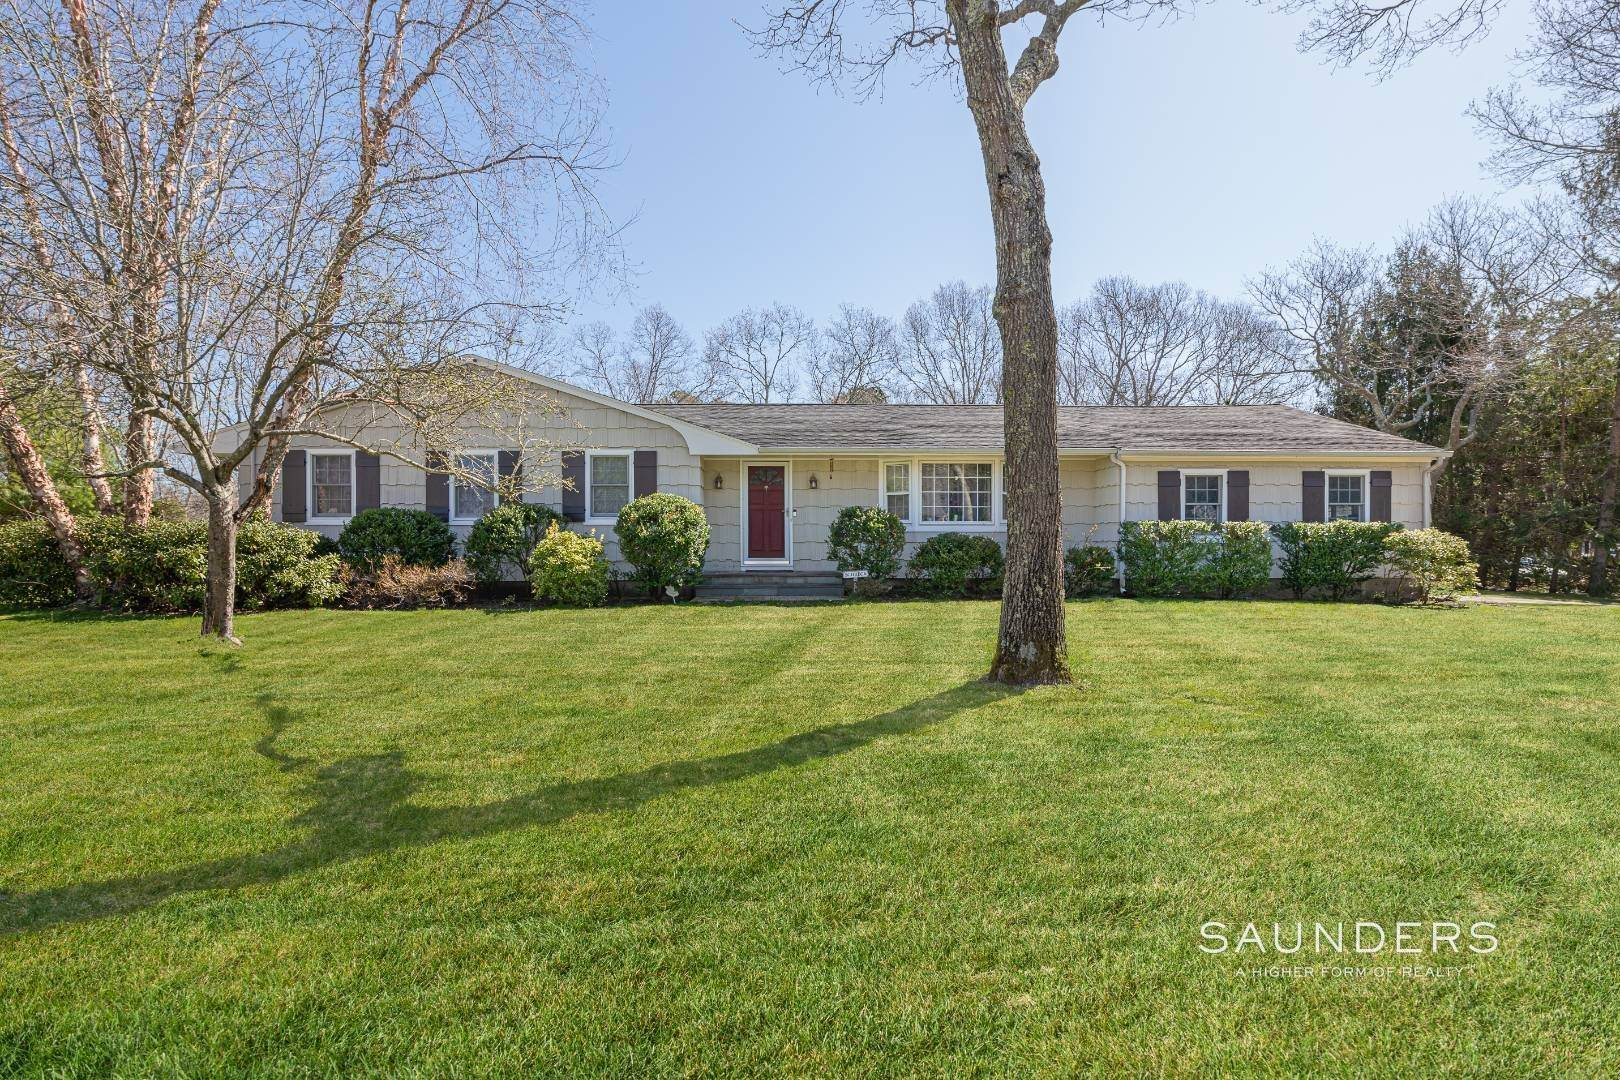 Single Family Homes for Sale at Desirable Tiana Shores Ranch With Pool In East Quogue 15 Deerfeed Path, East Quogue, Southampton Town, NY 11942